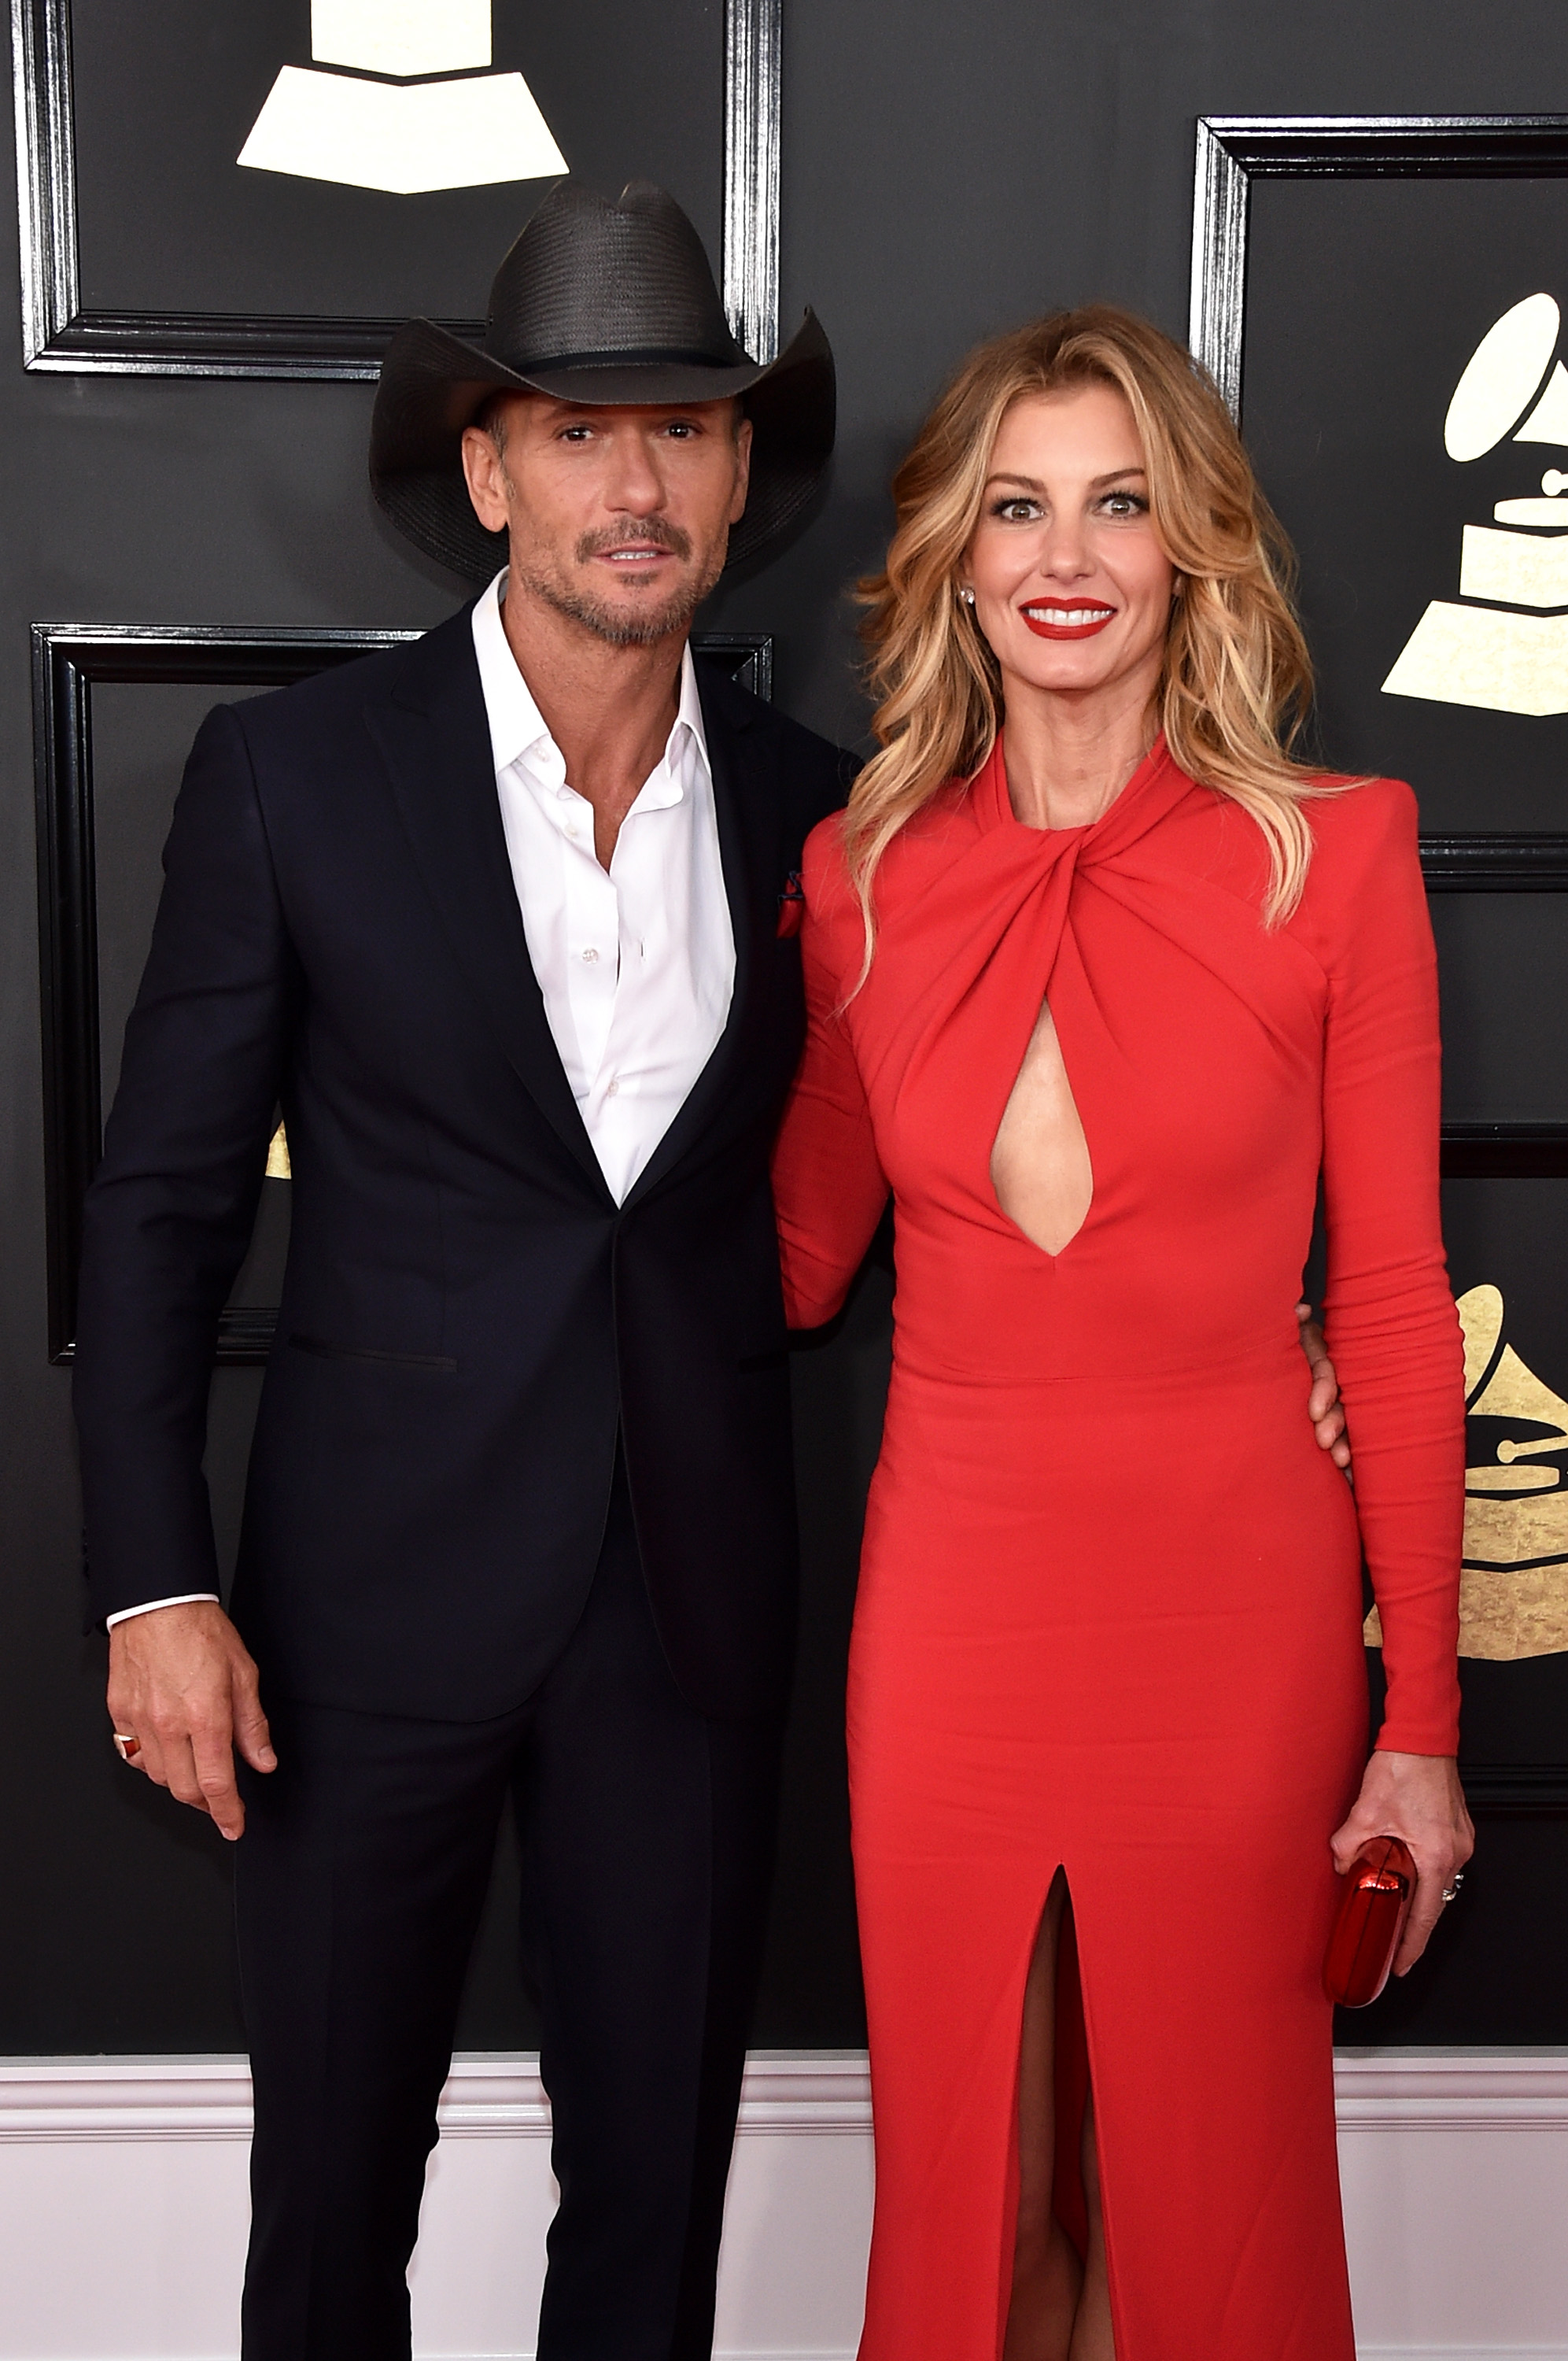 Tim McGraw and Faith Hill attend The 59th GRAMMY Awards; Photo by John Shearer/WireImage